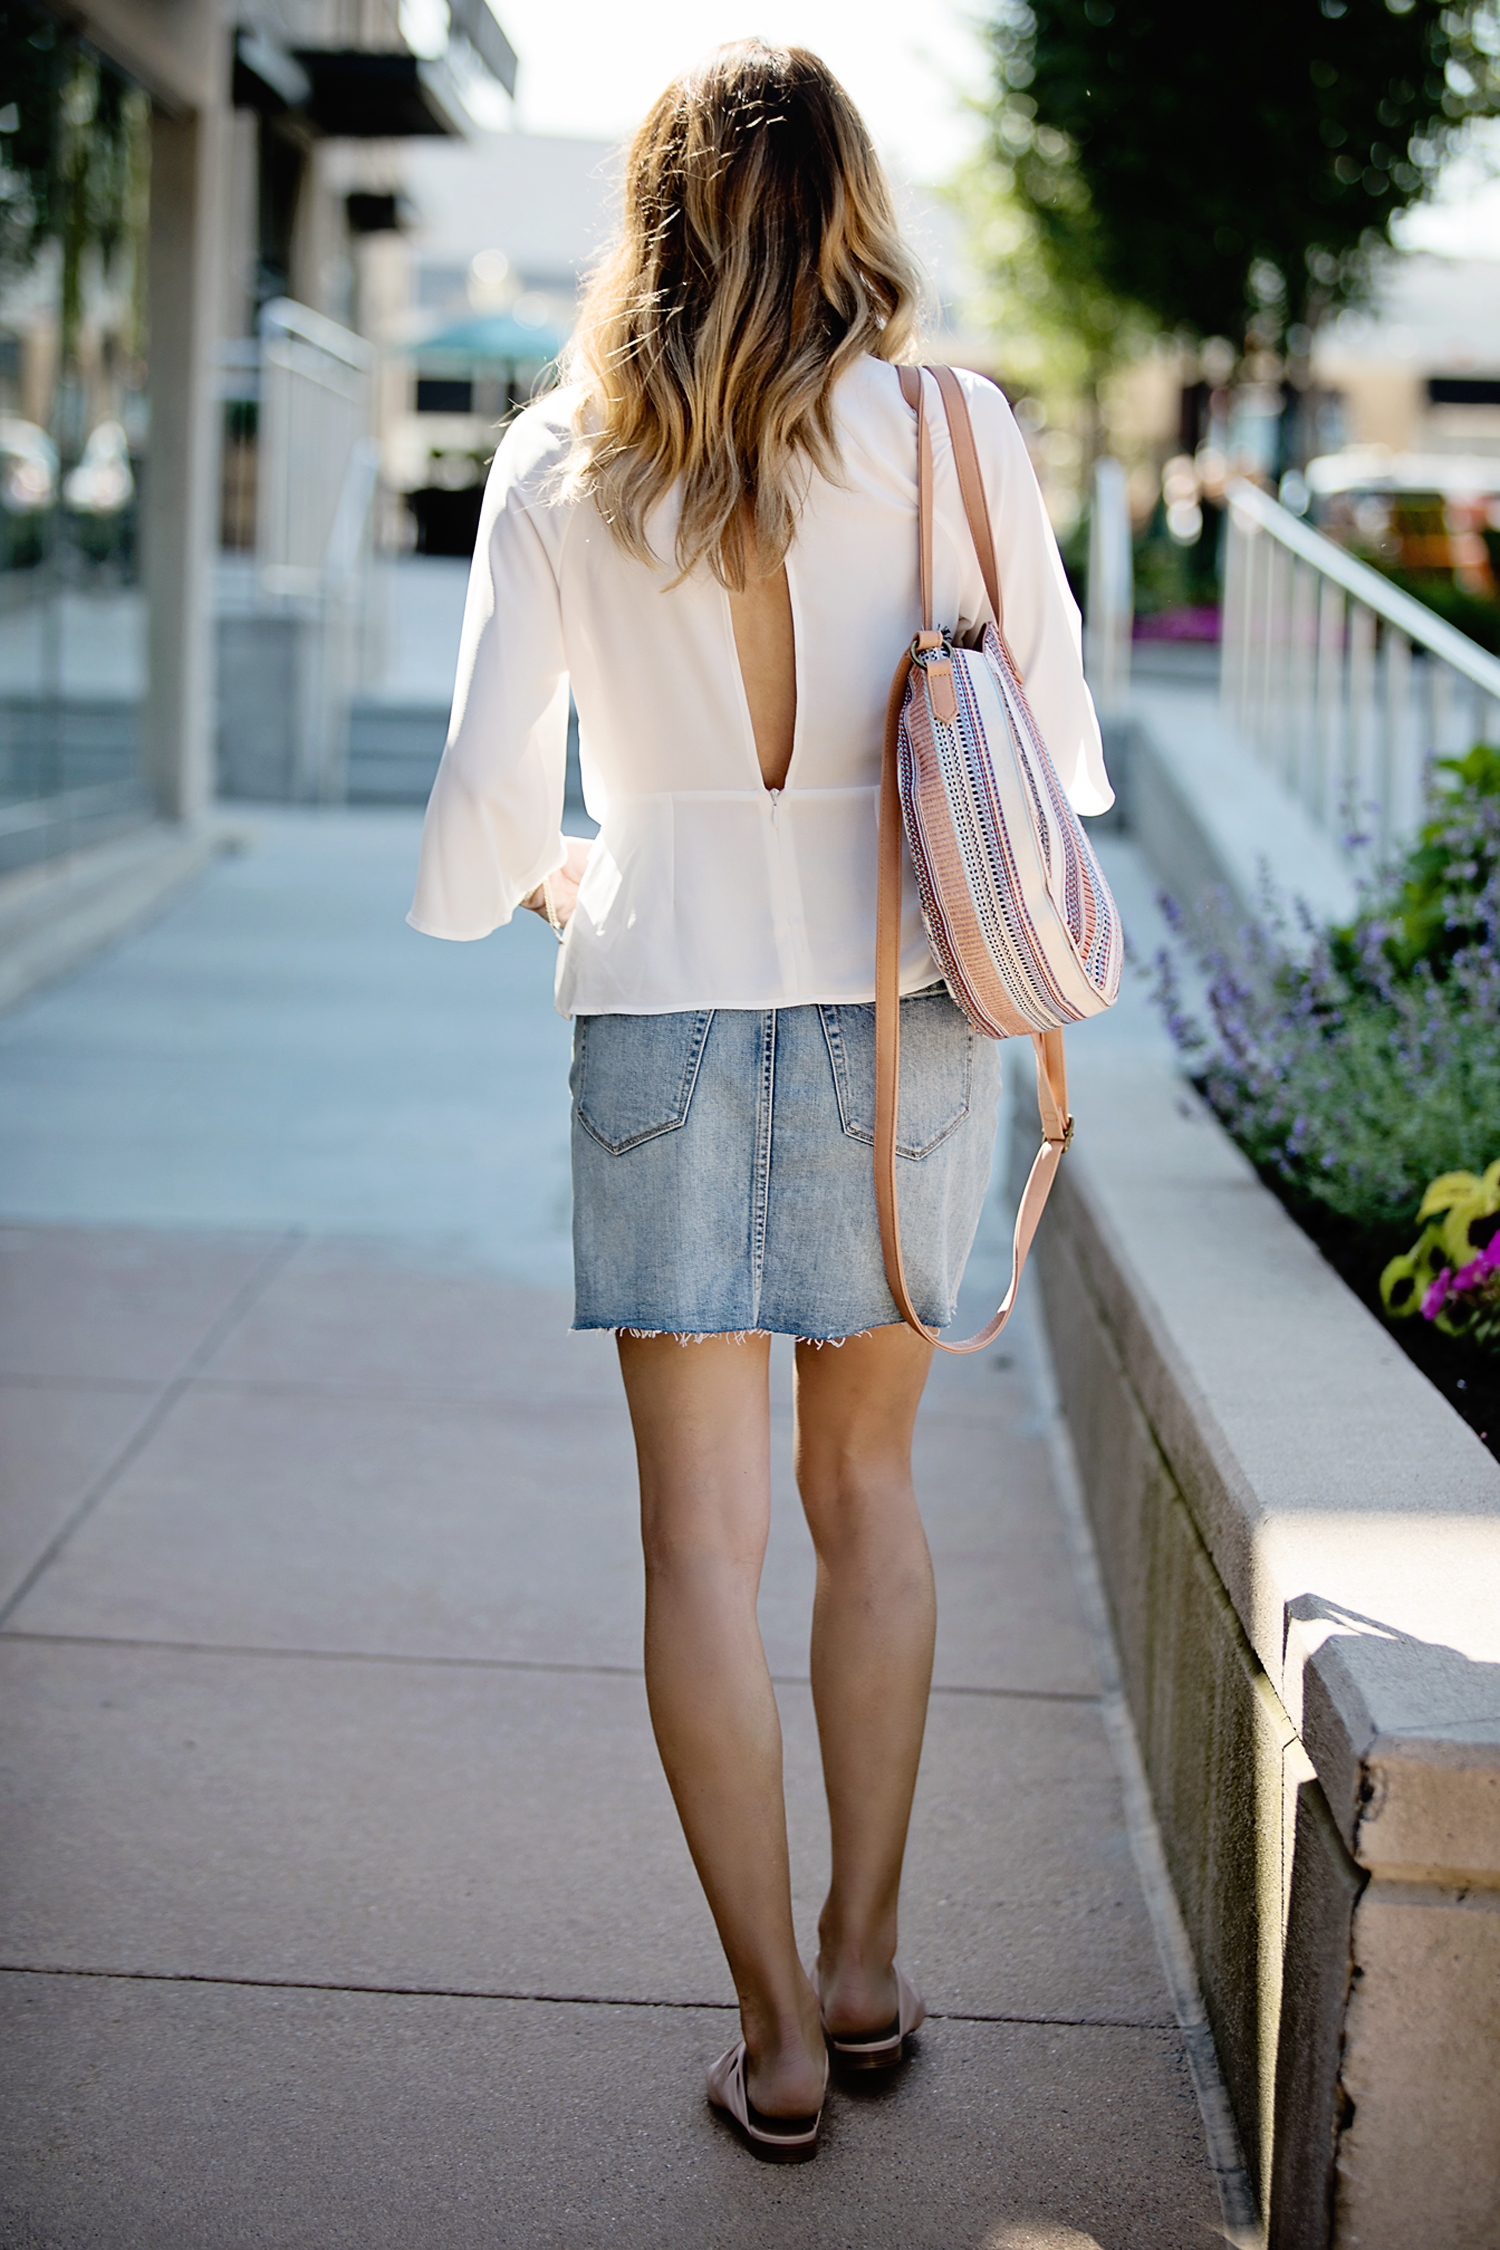 The Motherchic wearing topshop blouse and denim skirt